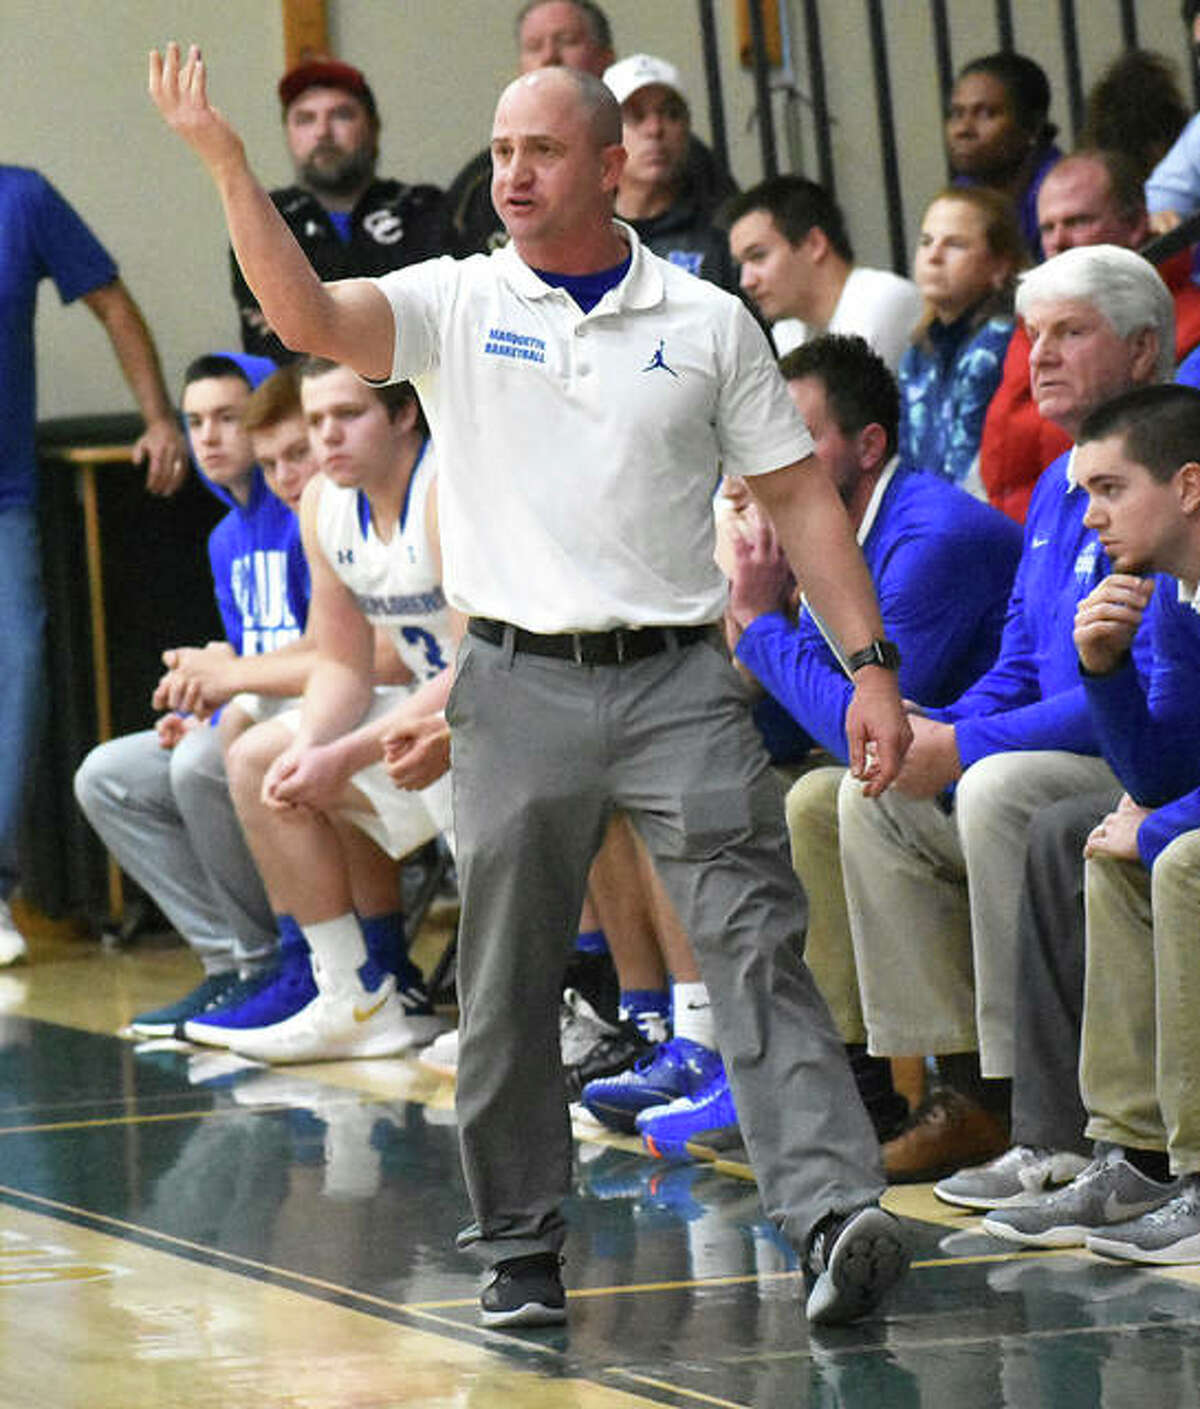 Marquette Catholic coach Steve Medford directs his team. Marquette is one of many schools waiting to see if the IHSA can work out its coronavirus dilemma so that boys and girls basketball can be played this school year.